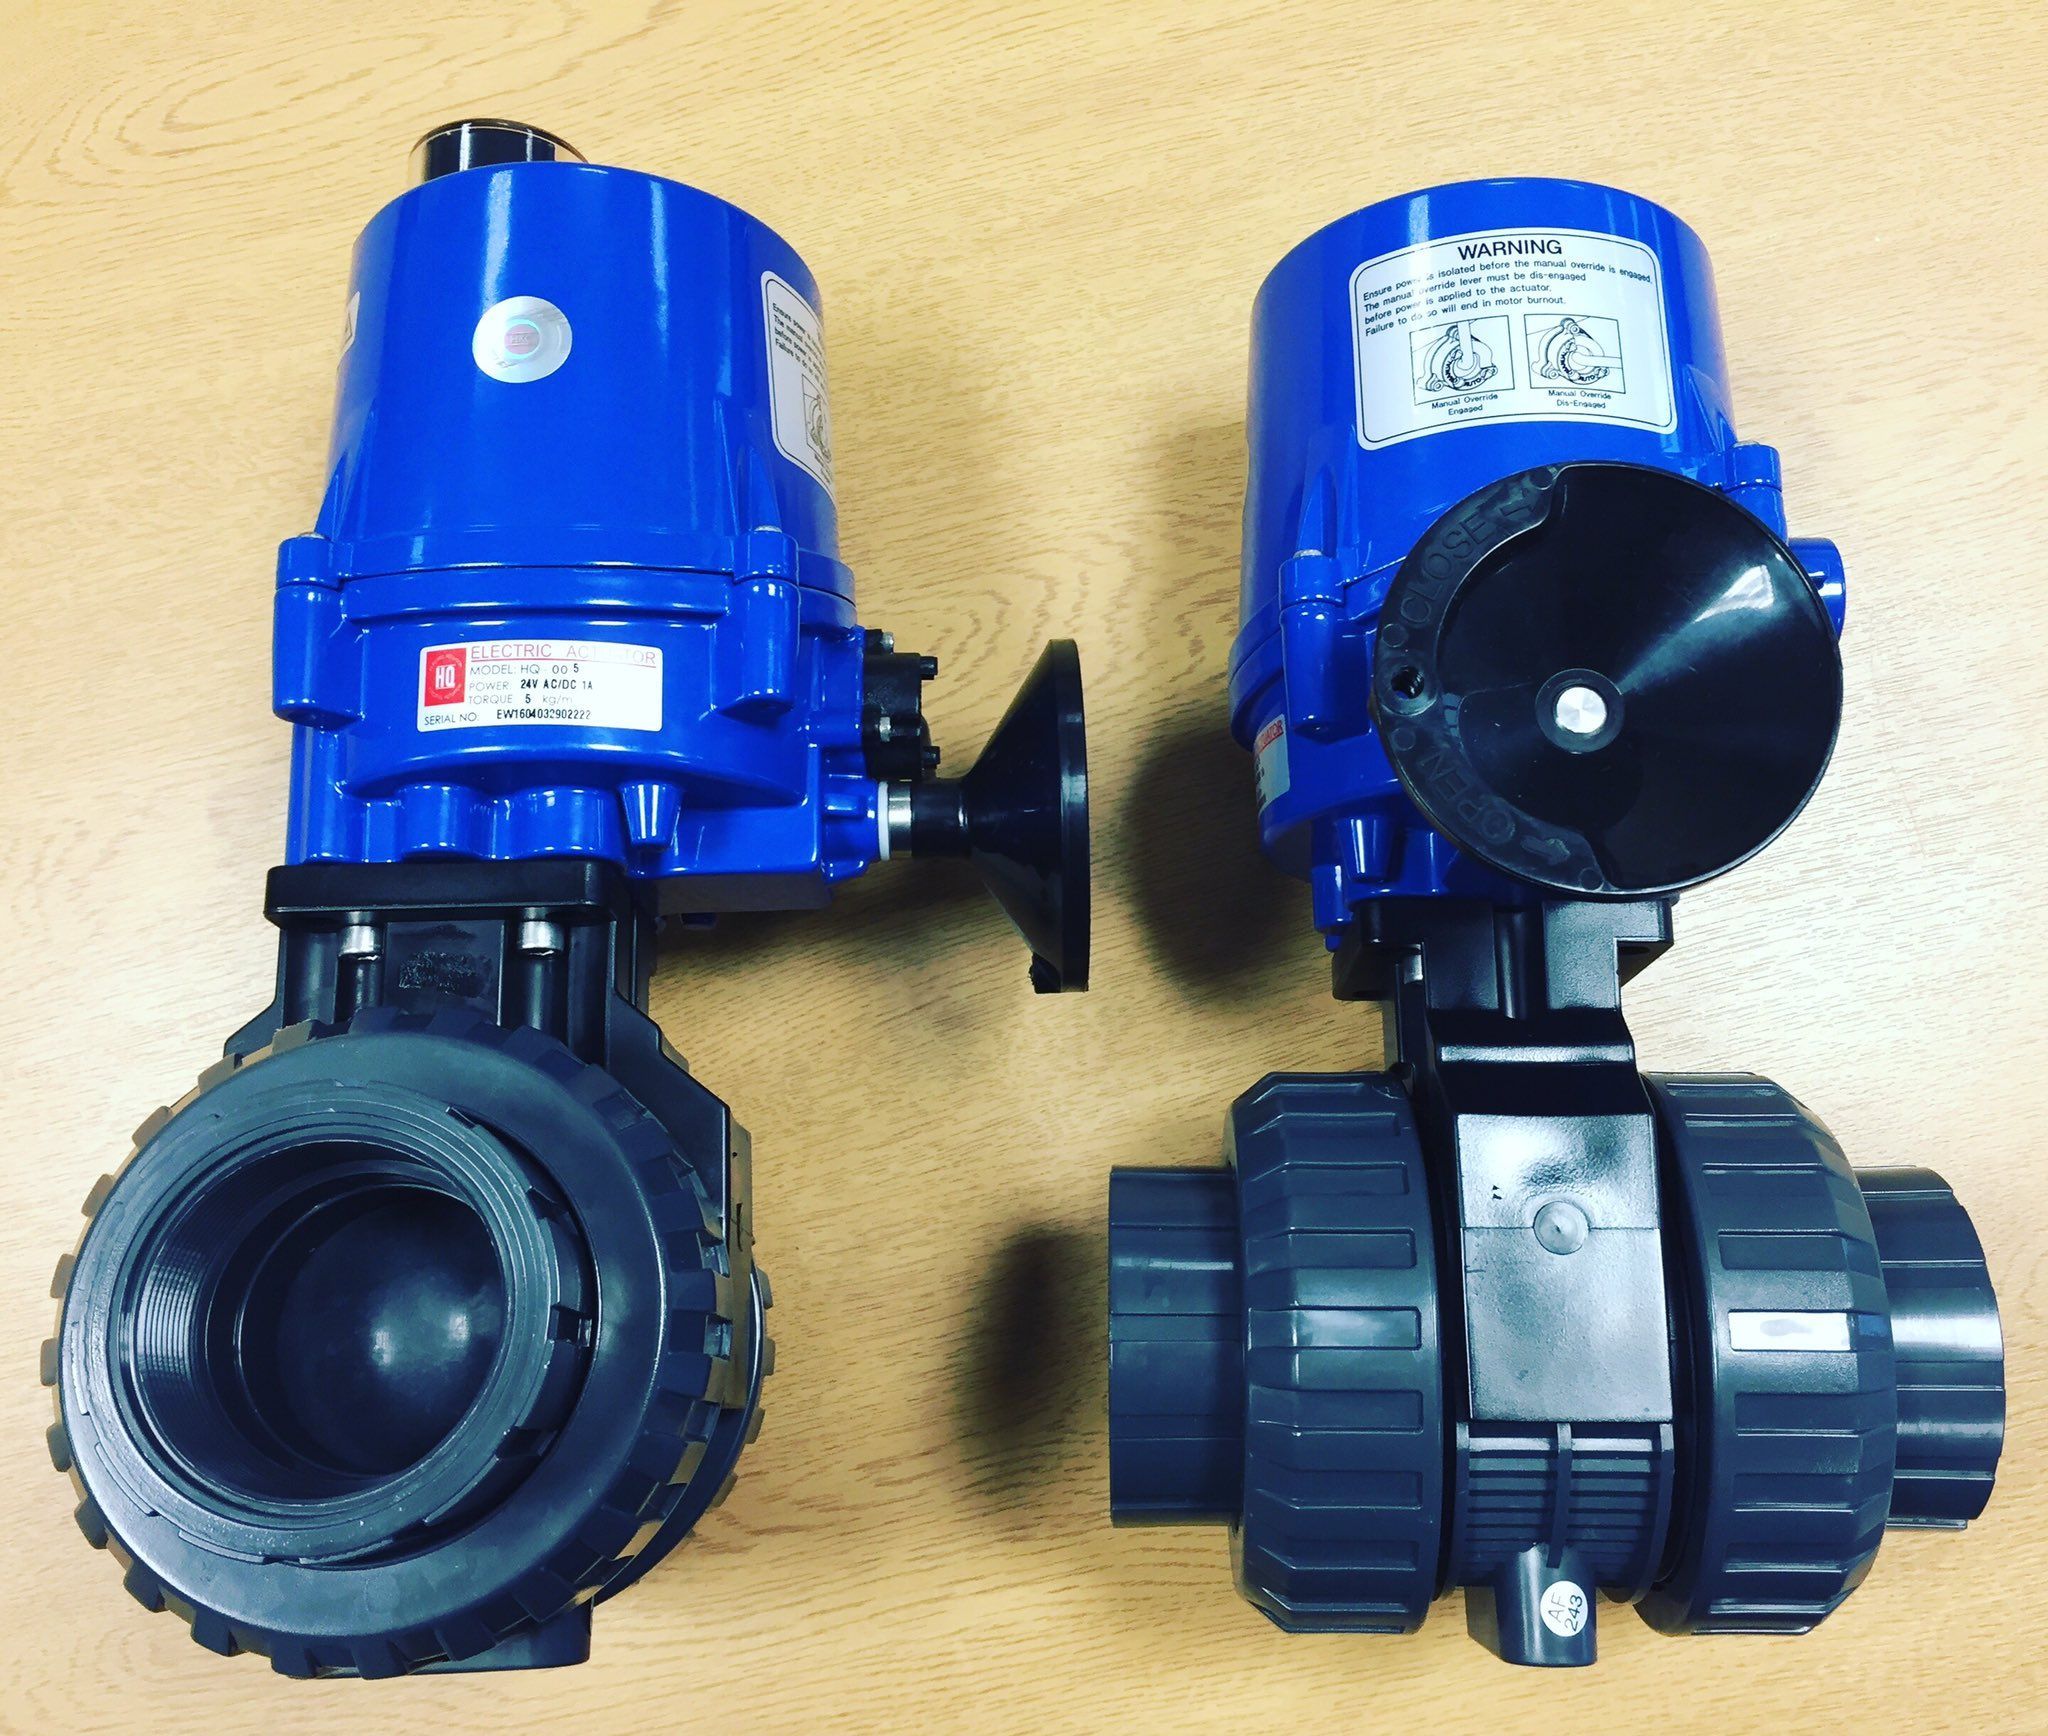 1 2 Ac Dc9 24v Motorized Ball Valve Dn15 5 Wires Cr502 Electric Motor Valve With Power Off Return Function Electric Water Valve Water Valves Control Valves